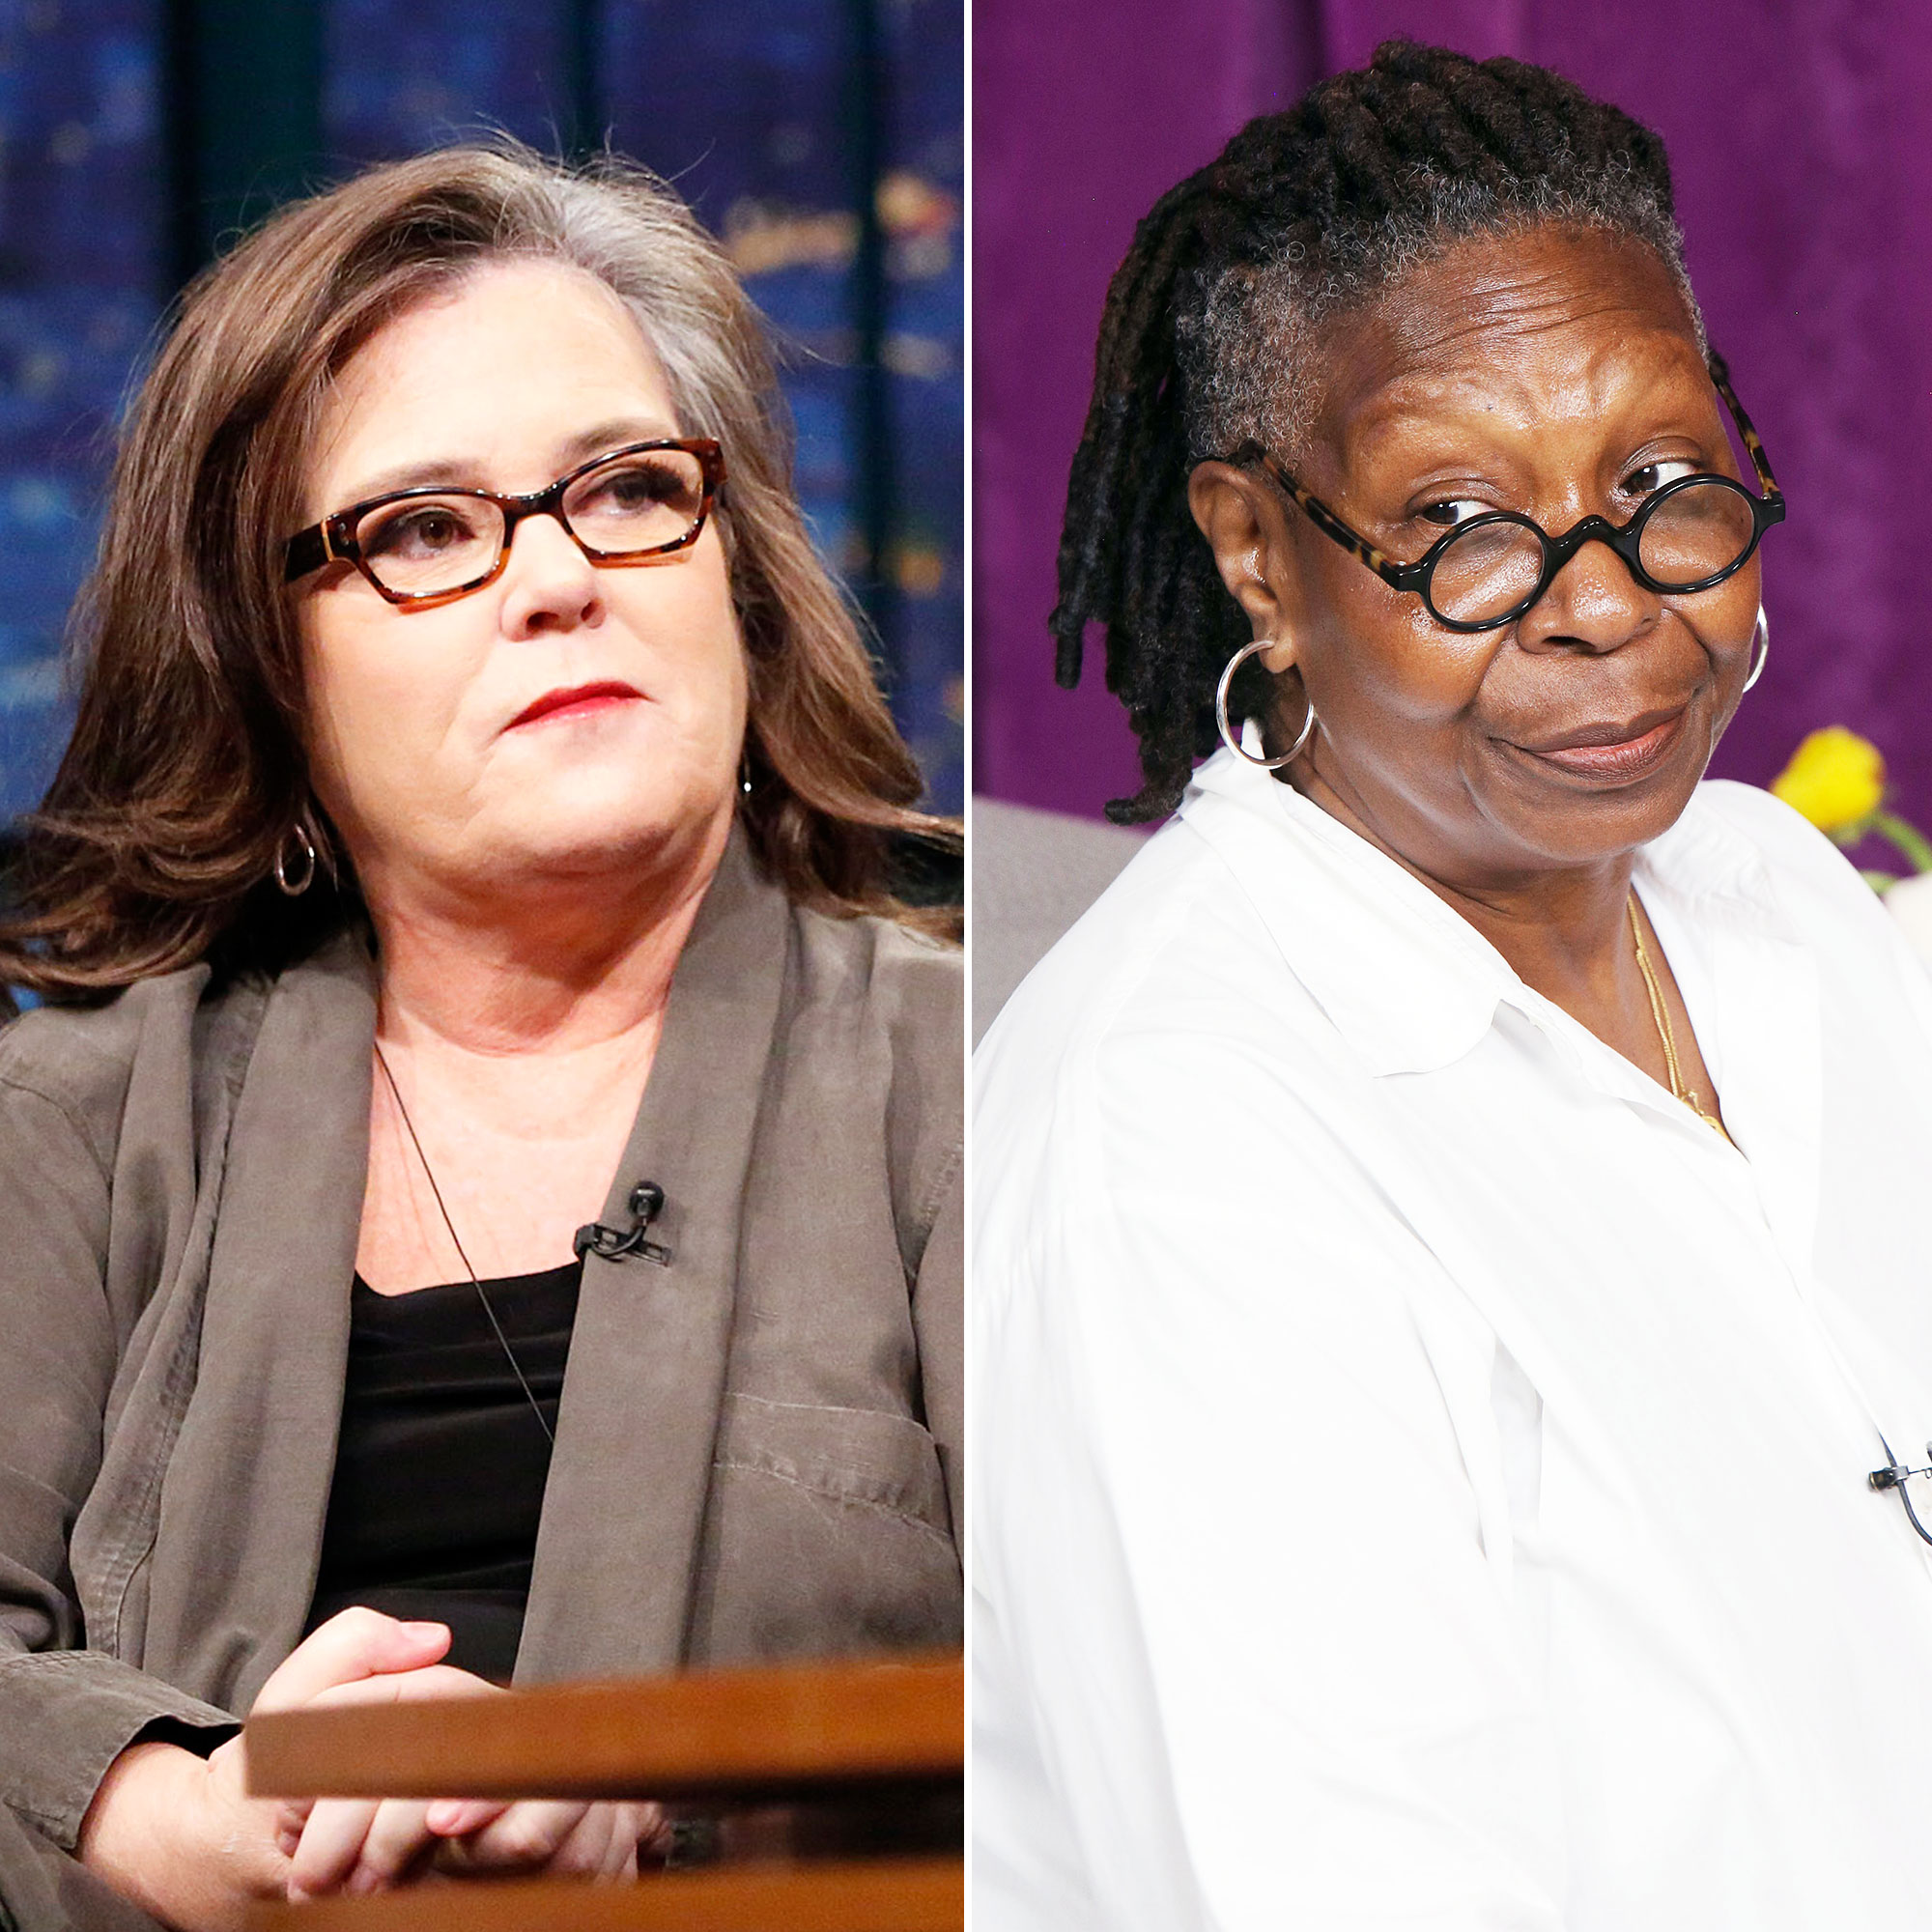 Rosie O'Donnell Whoppi Goldberg Worst Experience Live TV